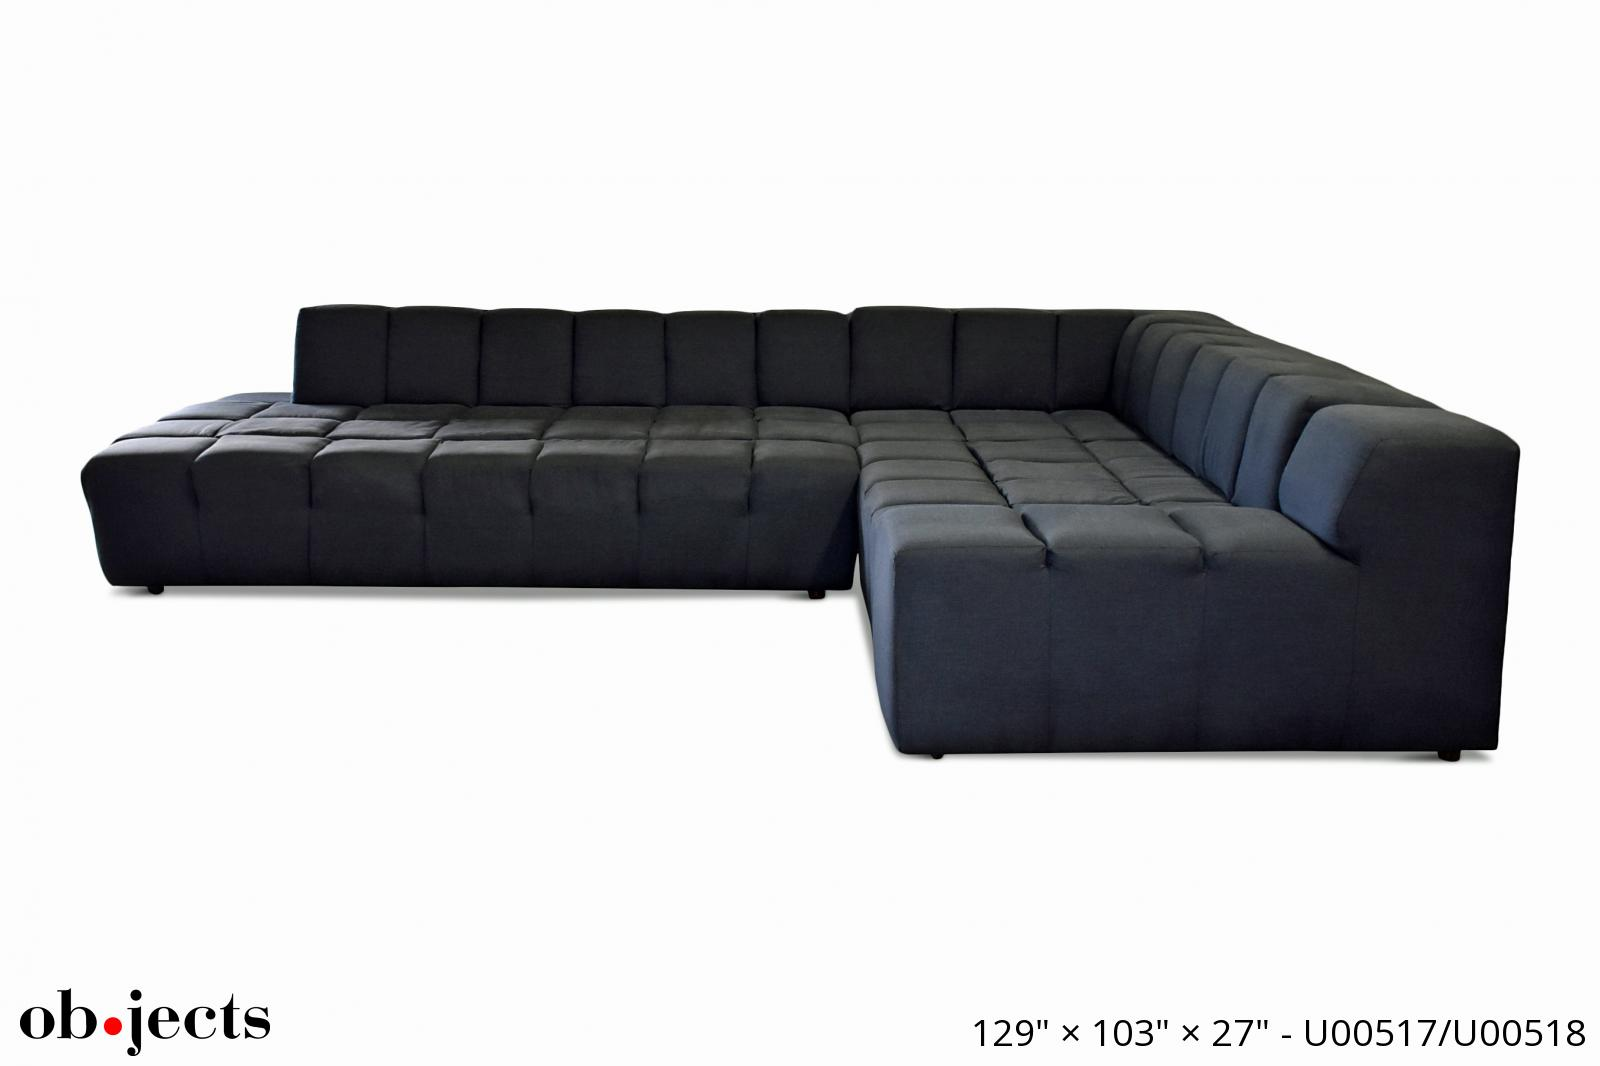 Swell Sectional Sofa Navy Blue Extra Large Tufting Objects Short Links Chair Design For Home Short Linksinfo